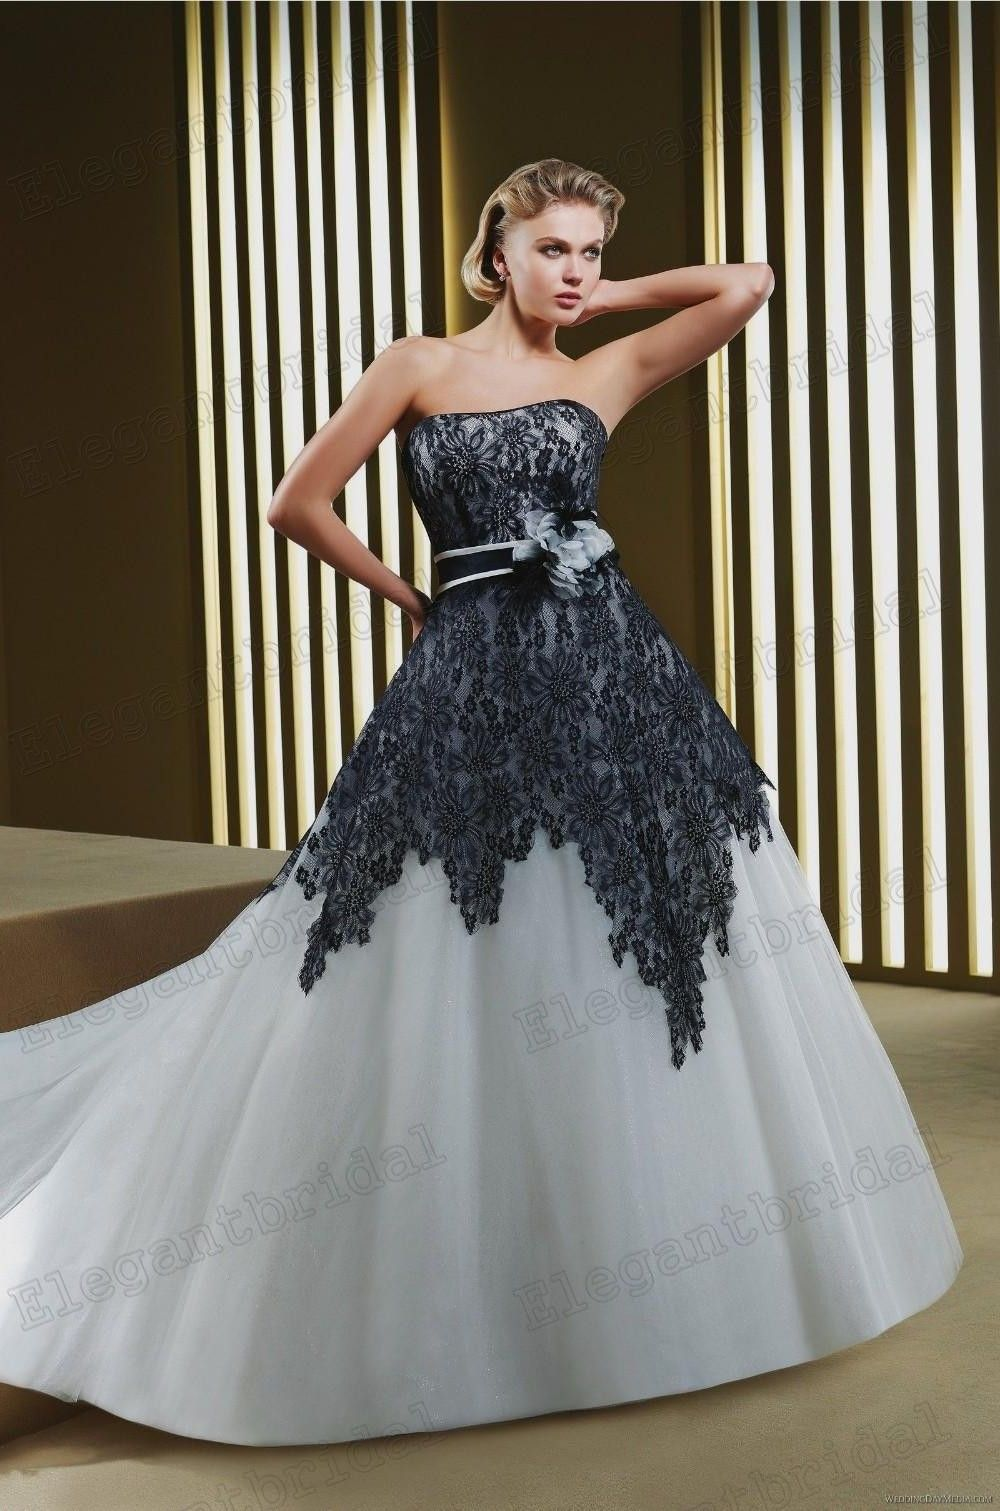 Vintage Black And White Wedding Dresses Gothic Bridal Gowns Lace ...